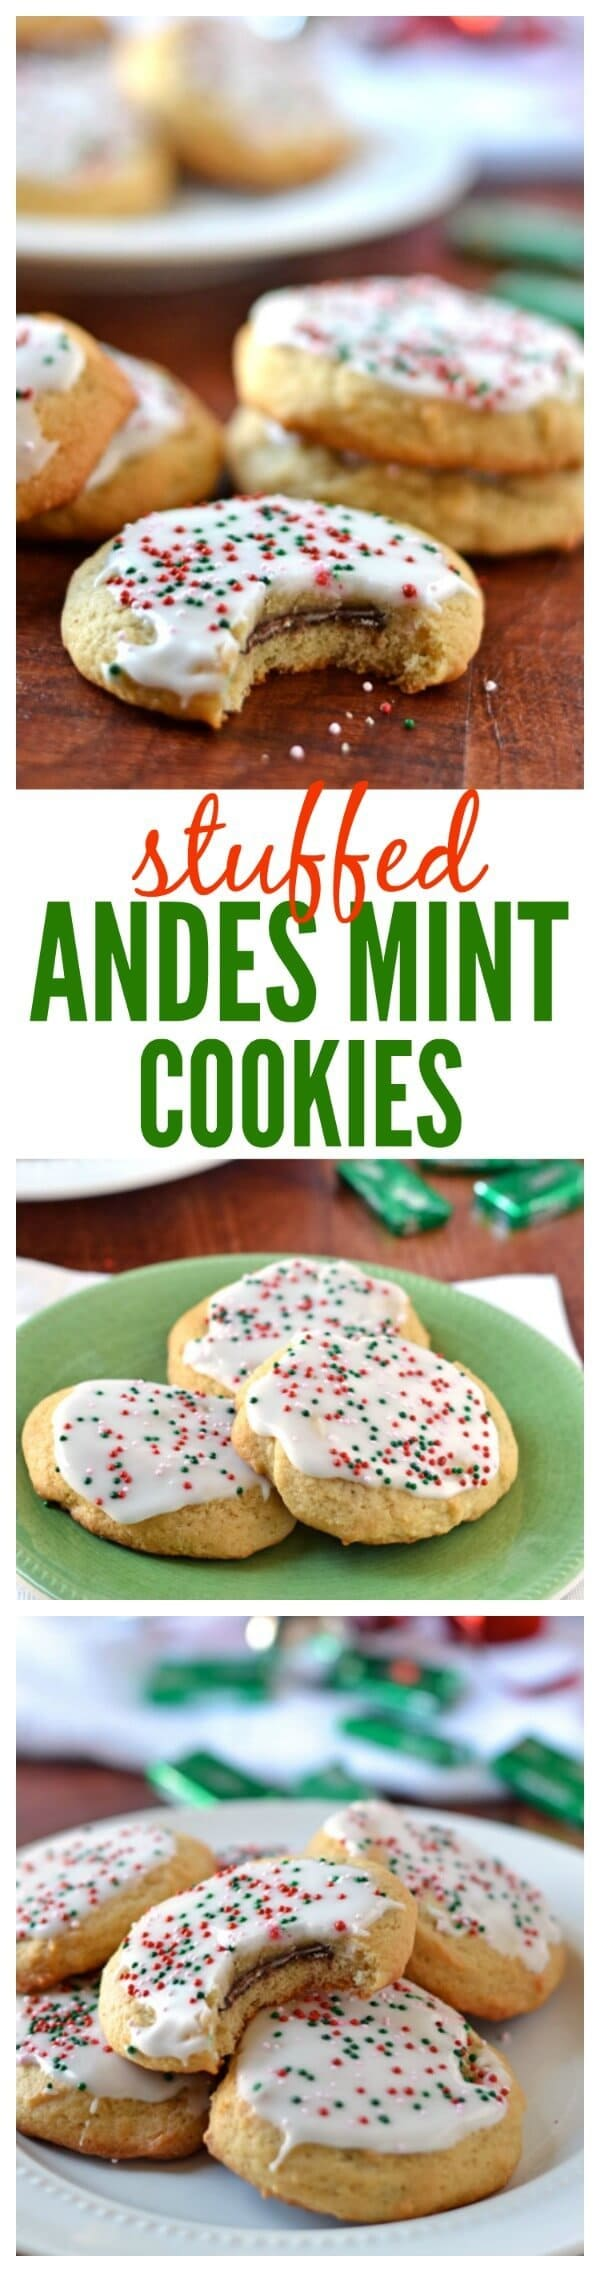 Andes Mint Cookies. Soft and fluffy sugar cookies, stuffed with creamy Andes Mint candies. The perfect Christmas cookie recipe for your cookie exchange. Everyone will love the surprise bite of chocolate mint!